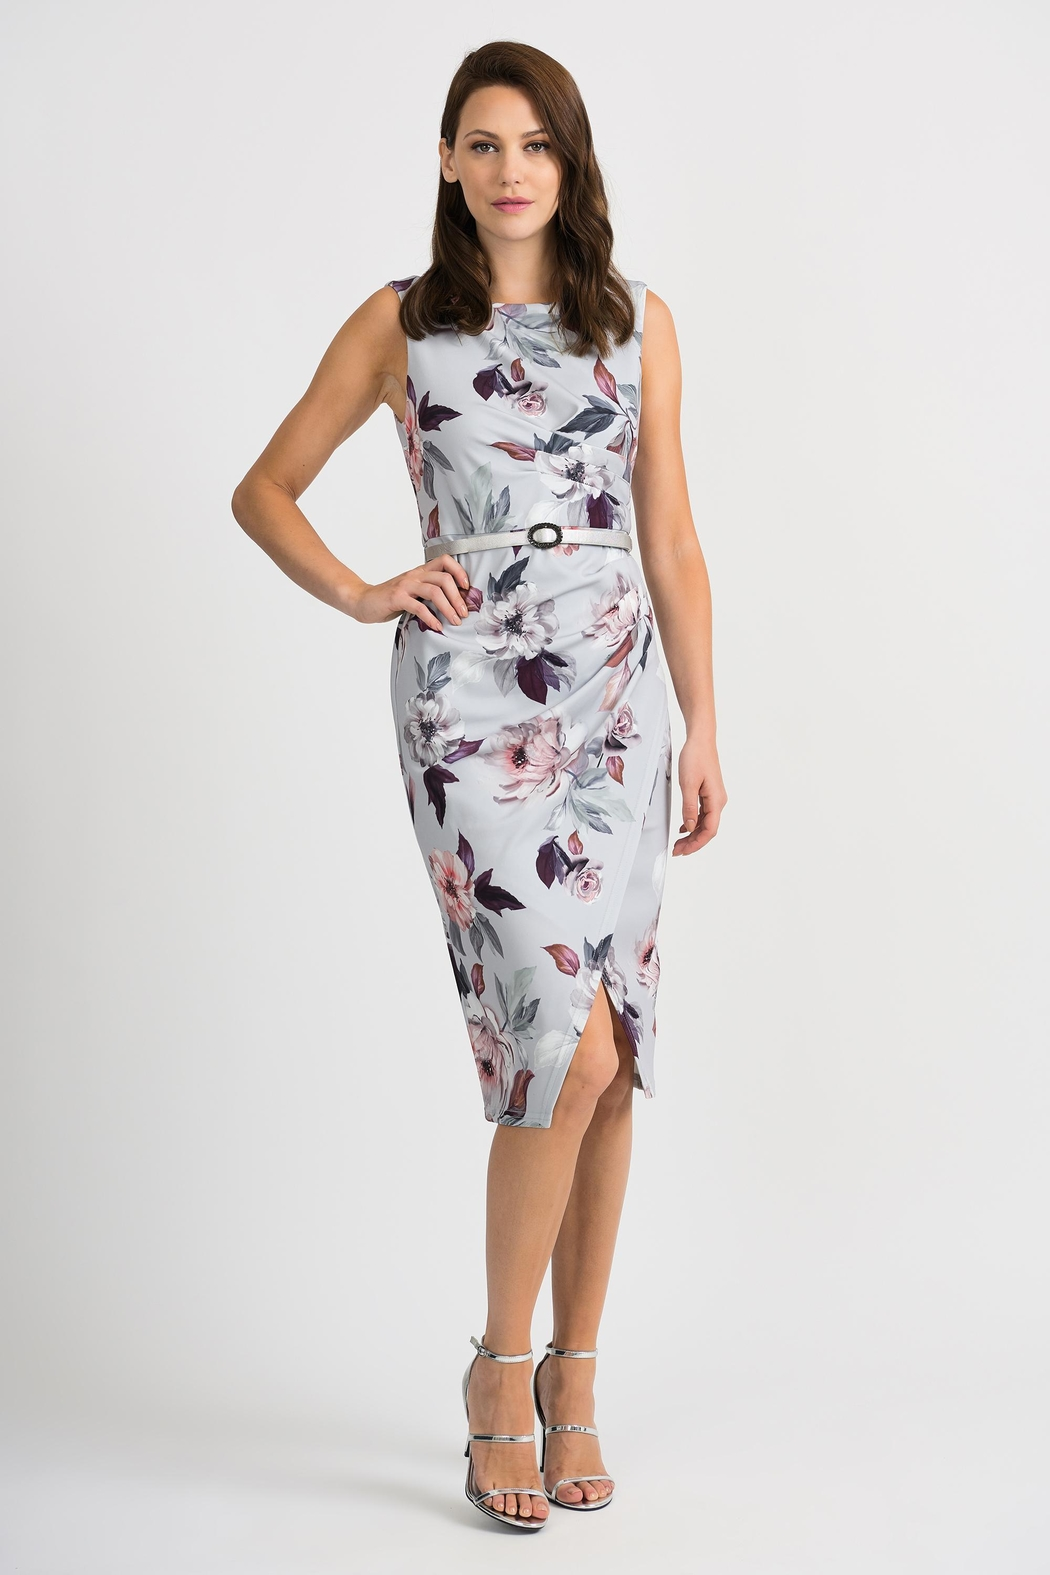 Joseph Ribkoff Peggy Floral-Belted Dress - Main Image